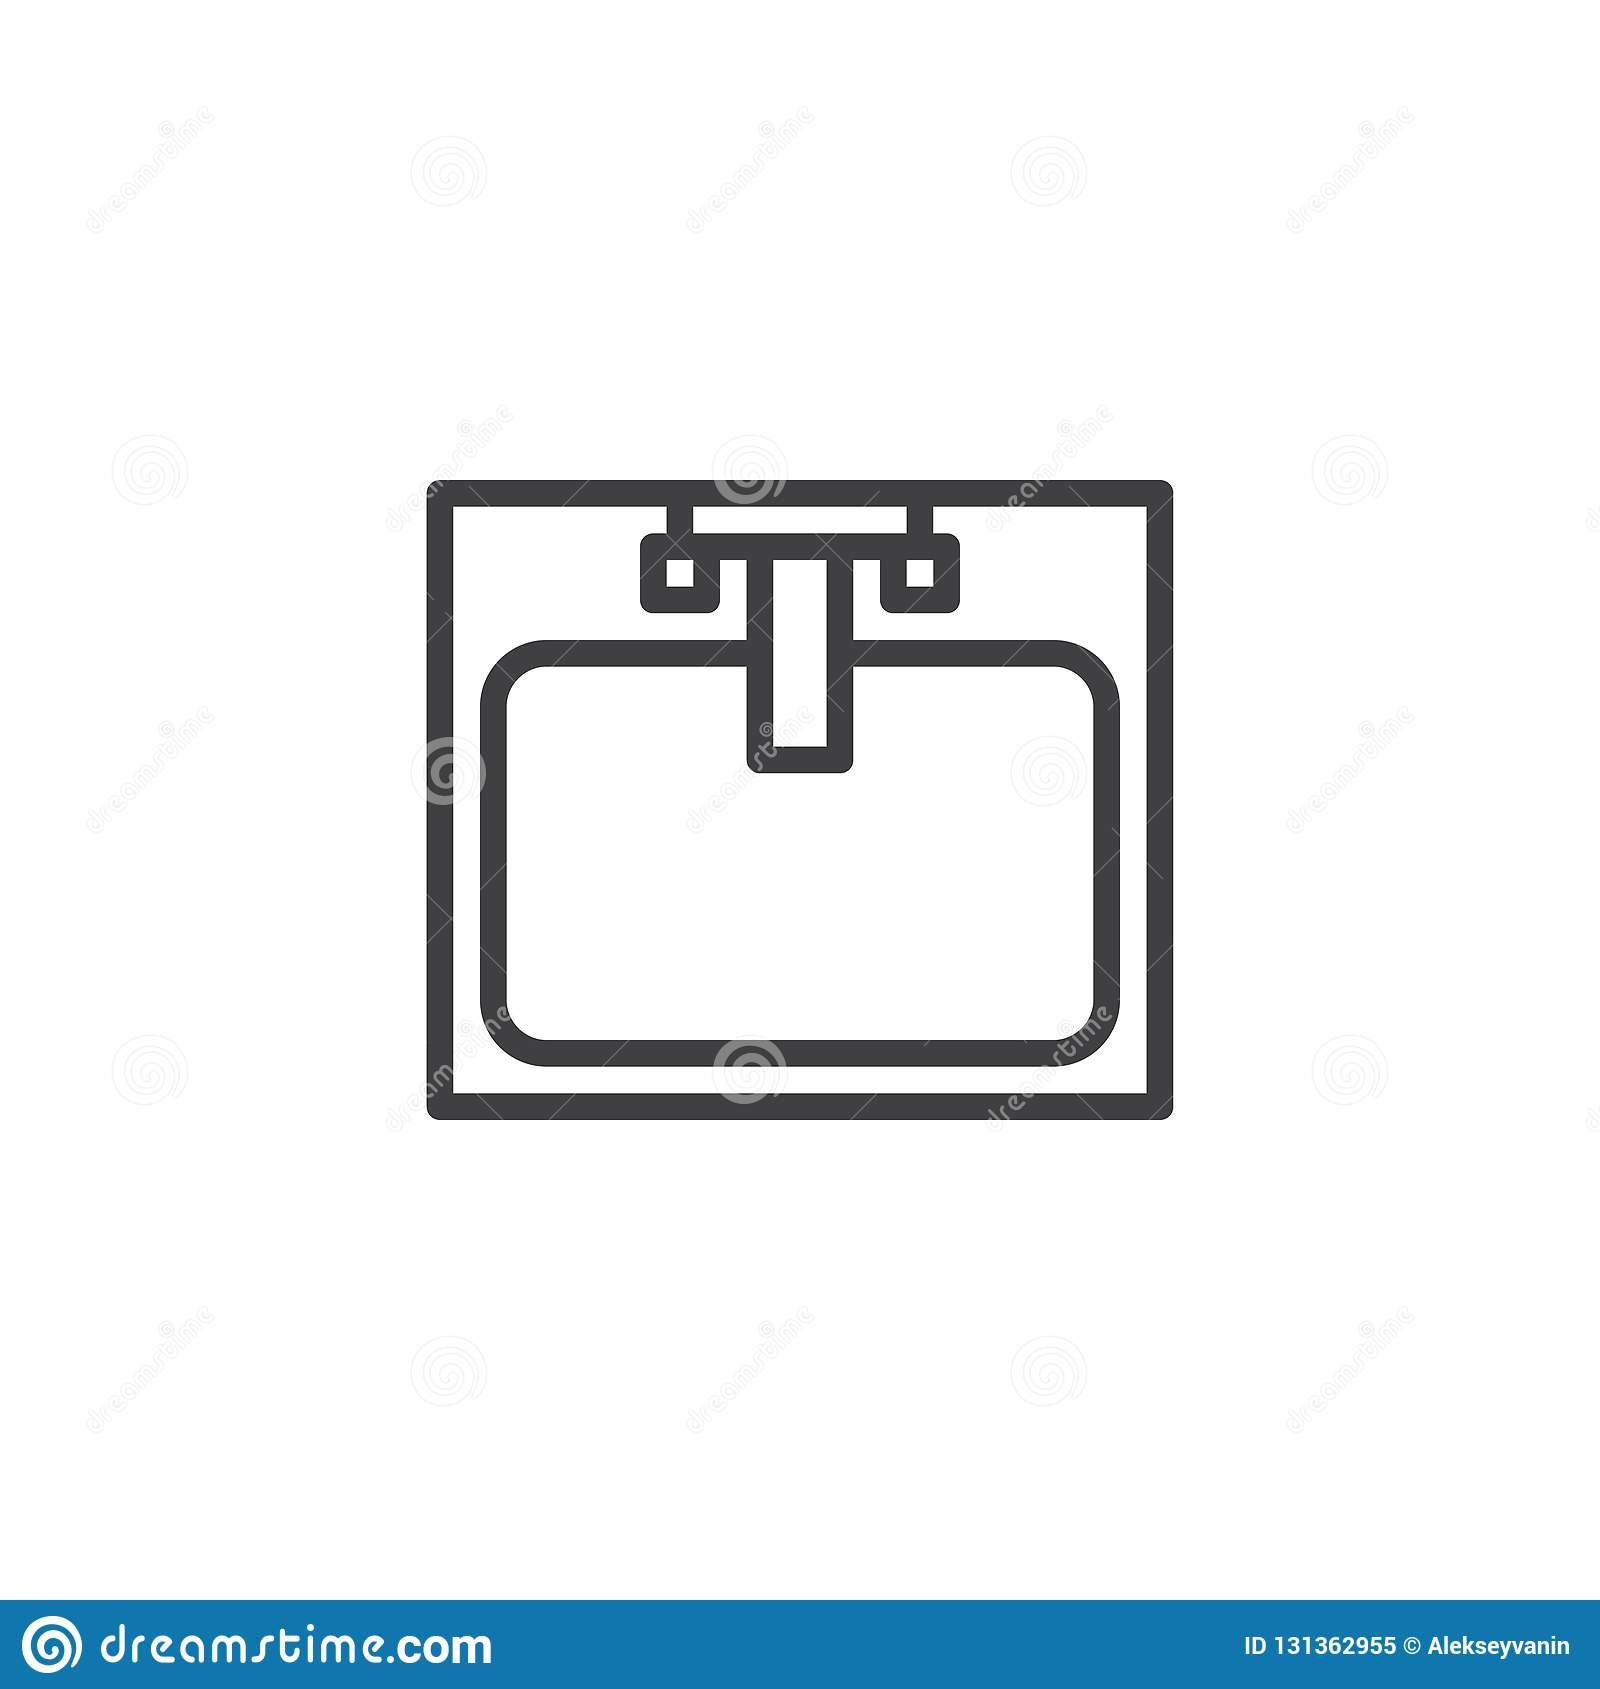 Kitchen Sink Drawing: Sink With Faucet Top View Outline Icon Stock Vector